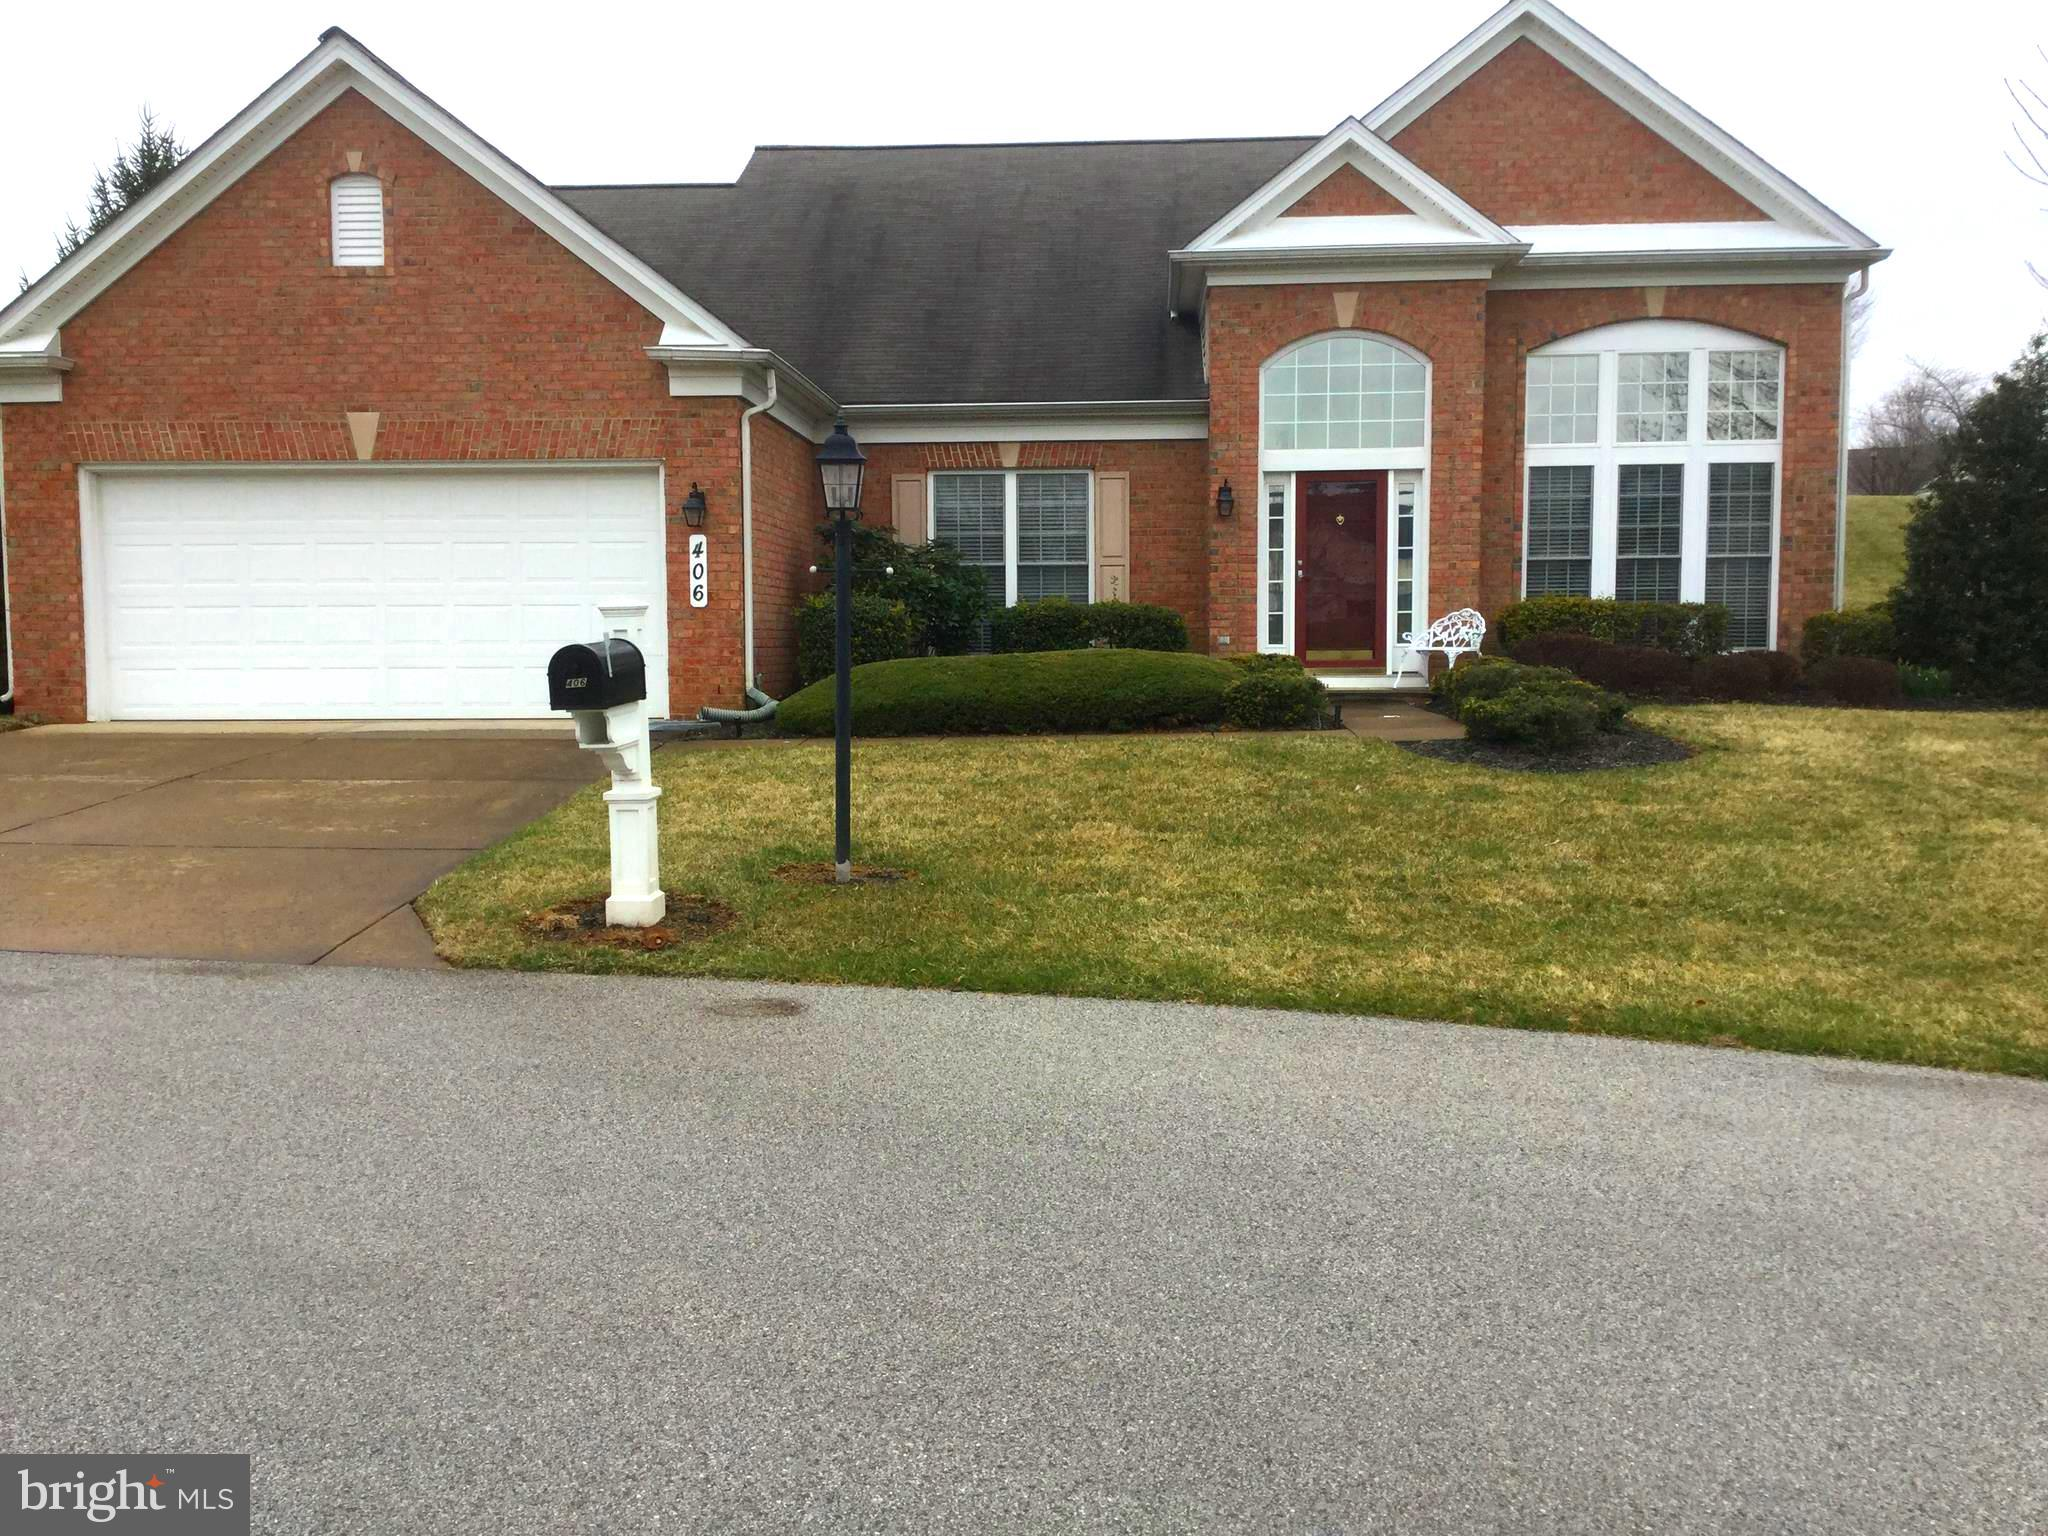 406 HIGH EARLS ROAD, WESTMINSTER, MD 21158